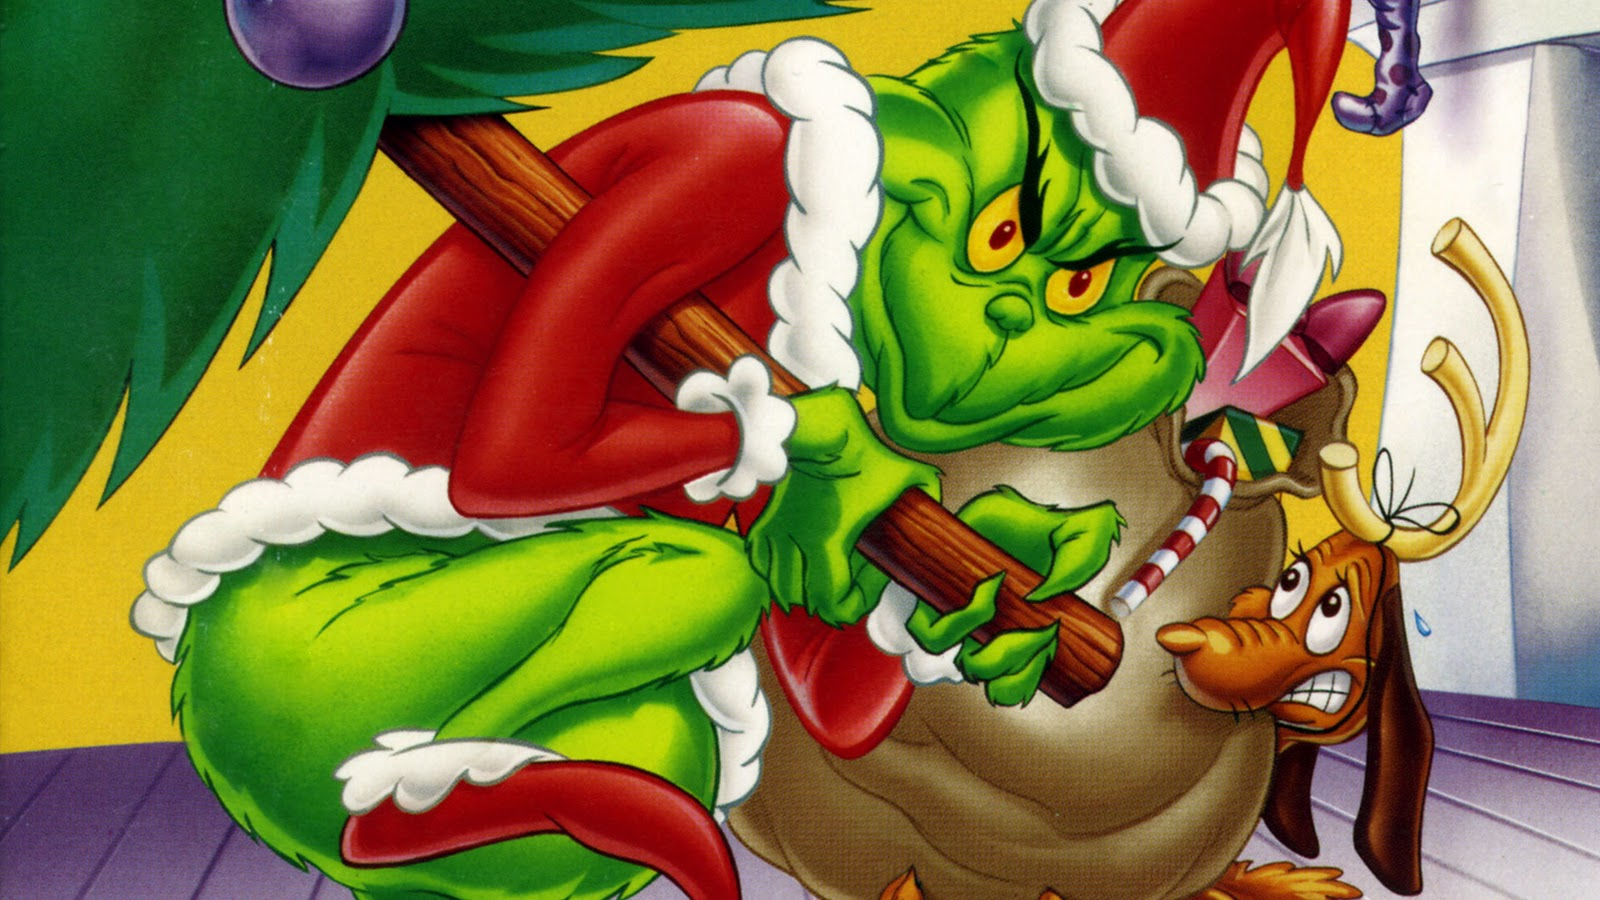 Protect Your Home From The Grinch With These Holiday